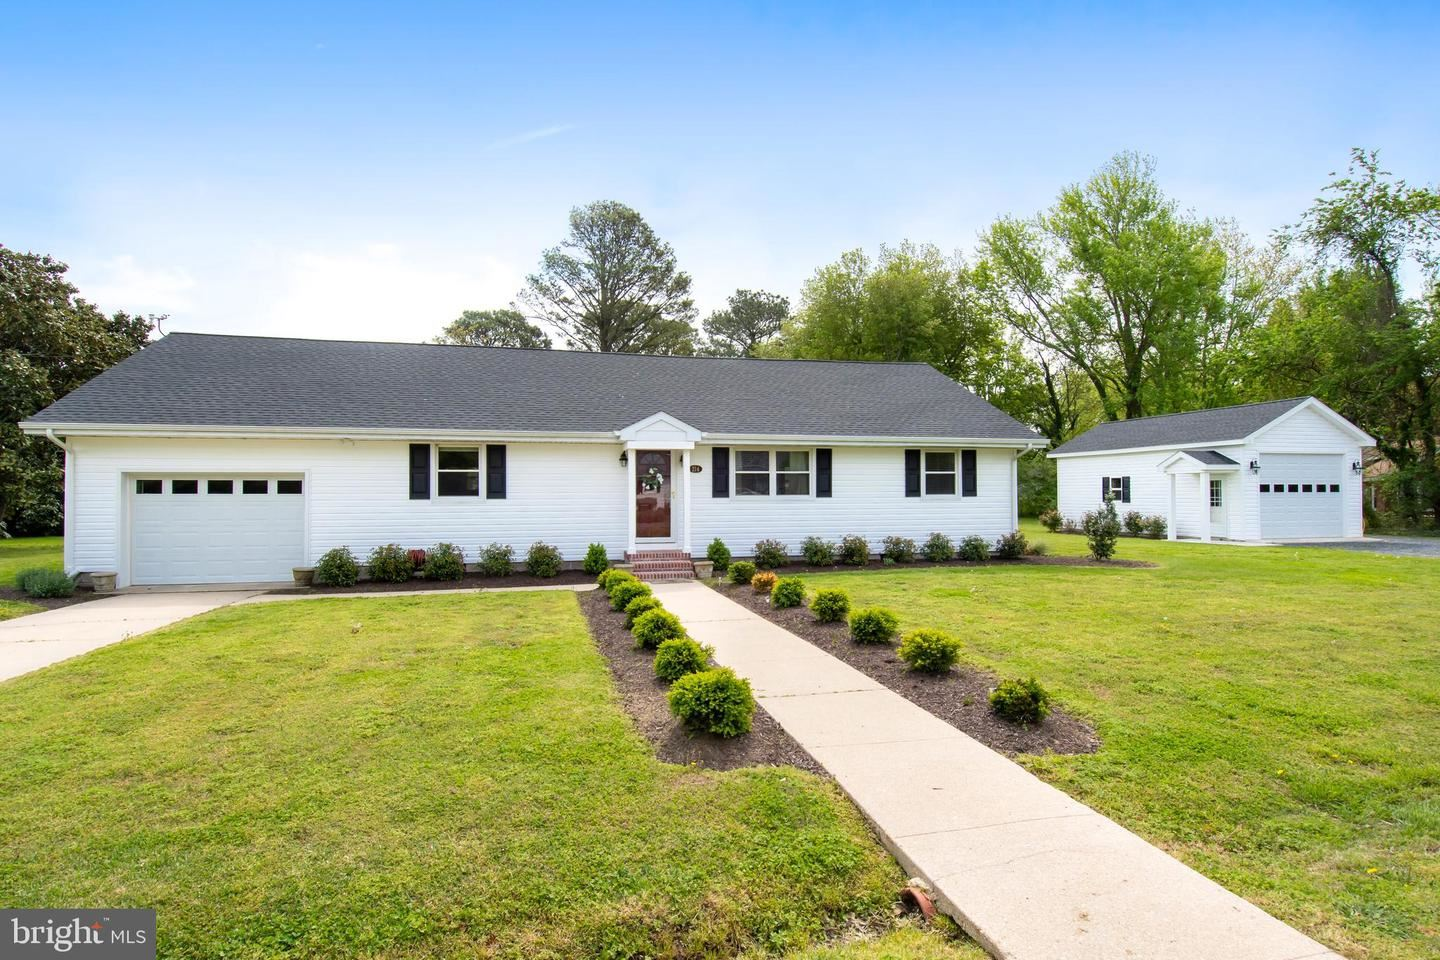 214 LINTHICUM DR, Cambridge, MD 21613 - MLS#: MDDO127334